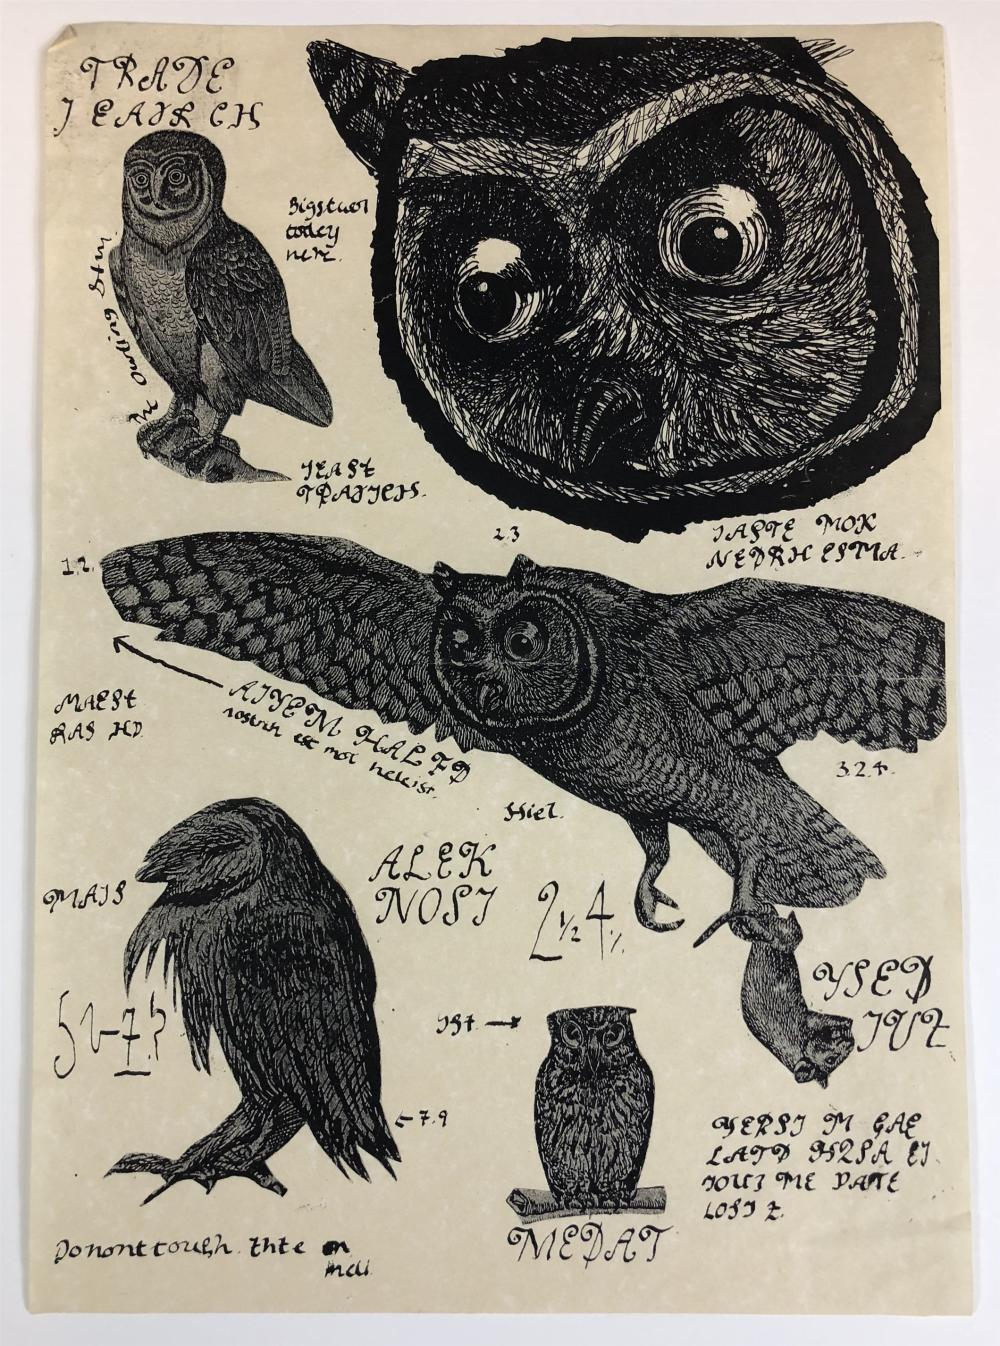 Harry Potter and the Order of the Phoenix (2007) - Owl Drawings from Hogwarts